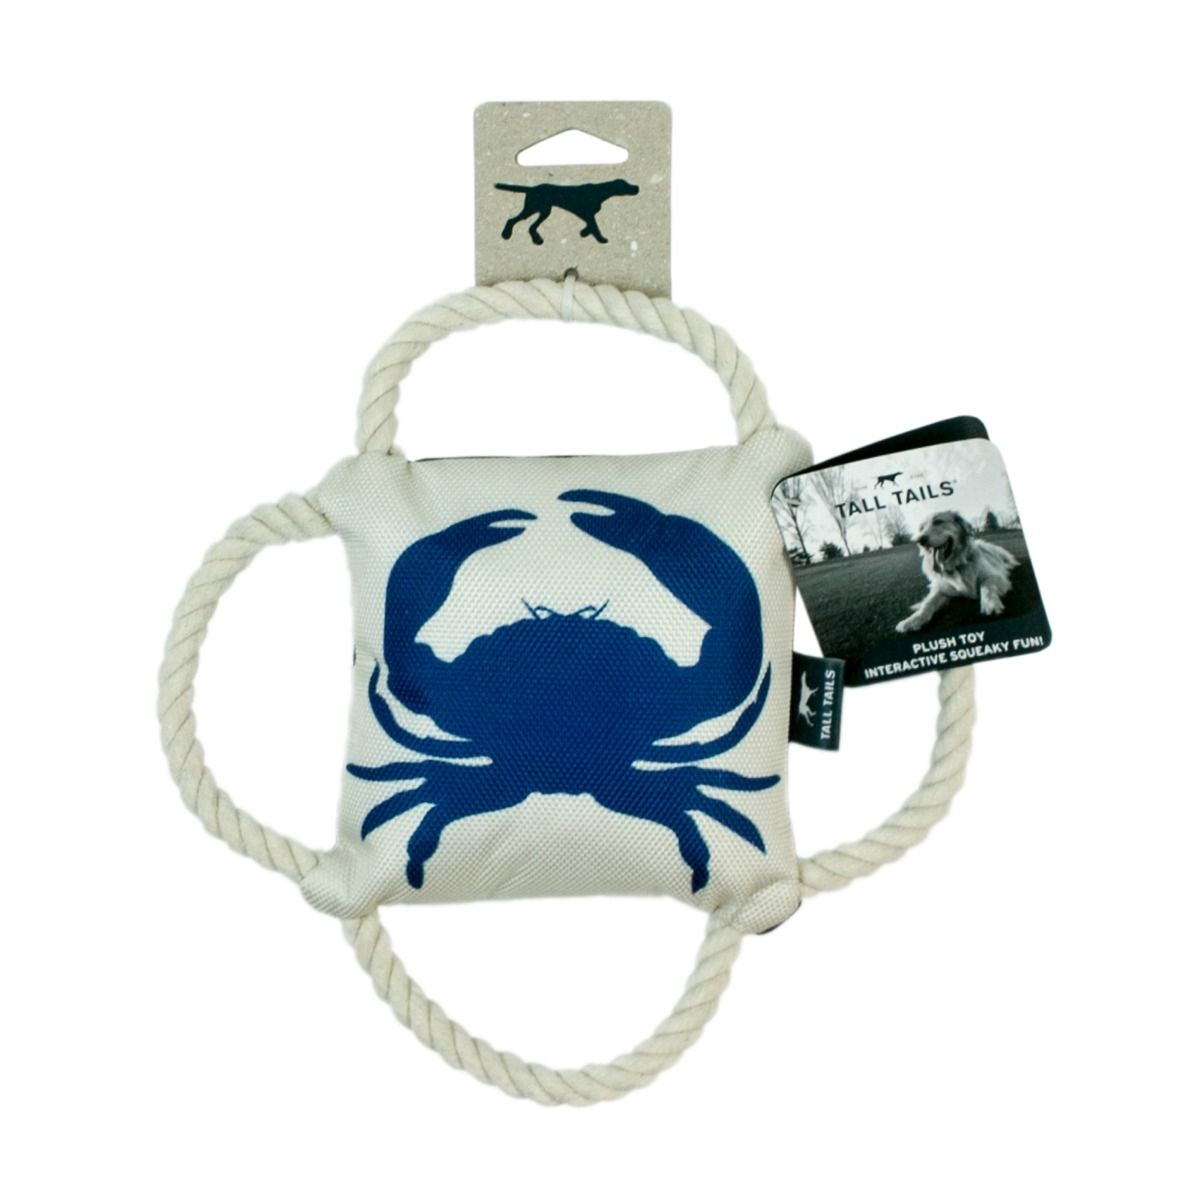 TALL TAILS 4 WAY TUG BLUE CRAB W/SQUEAKER 10""